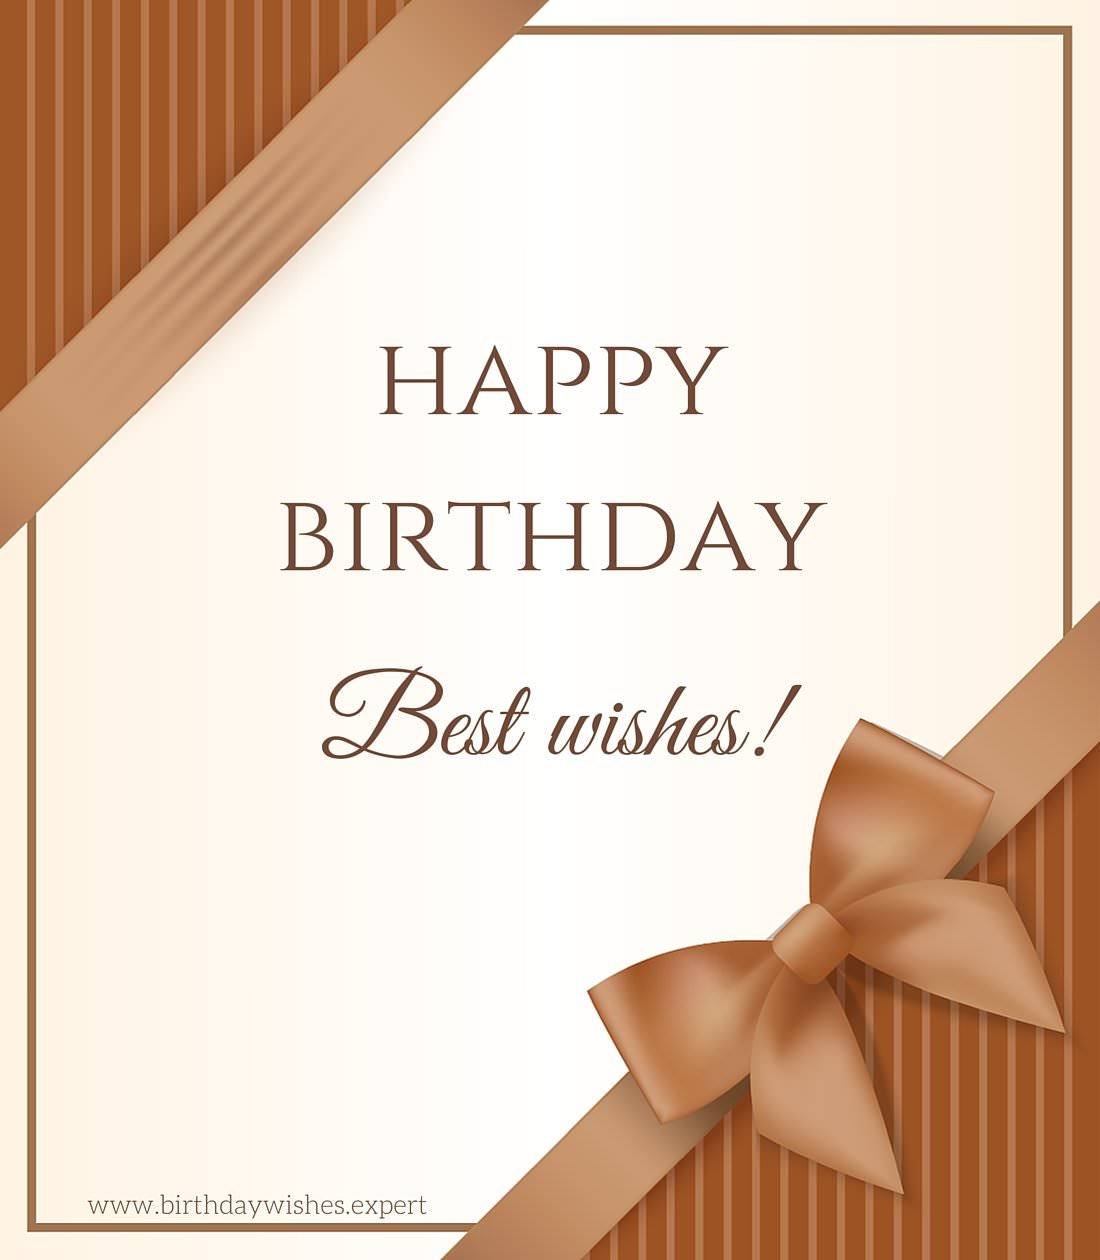 happy birthday formal message ; Formal-Happy-Birthday-image-with-a-wish